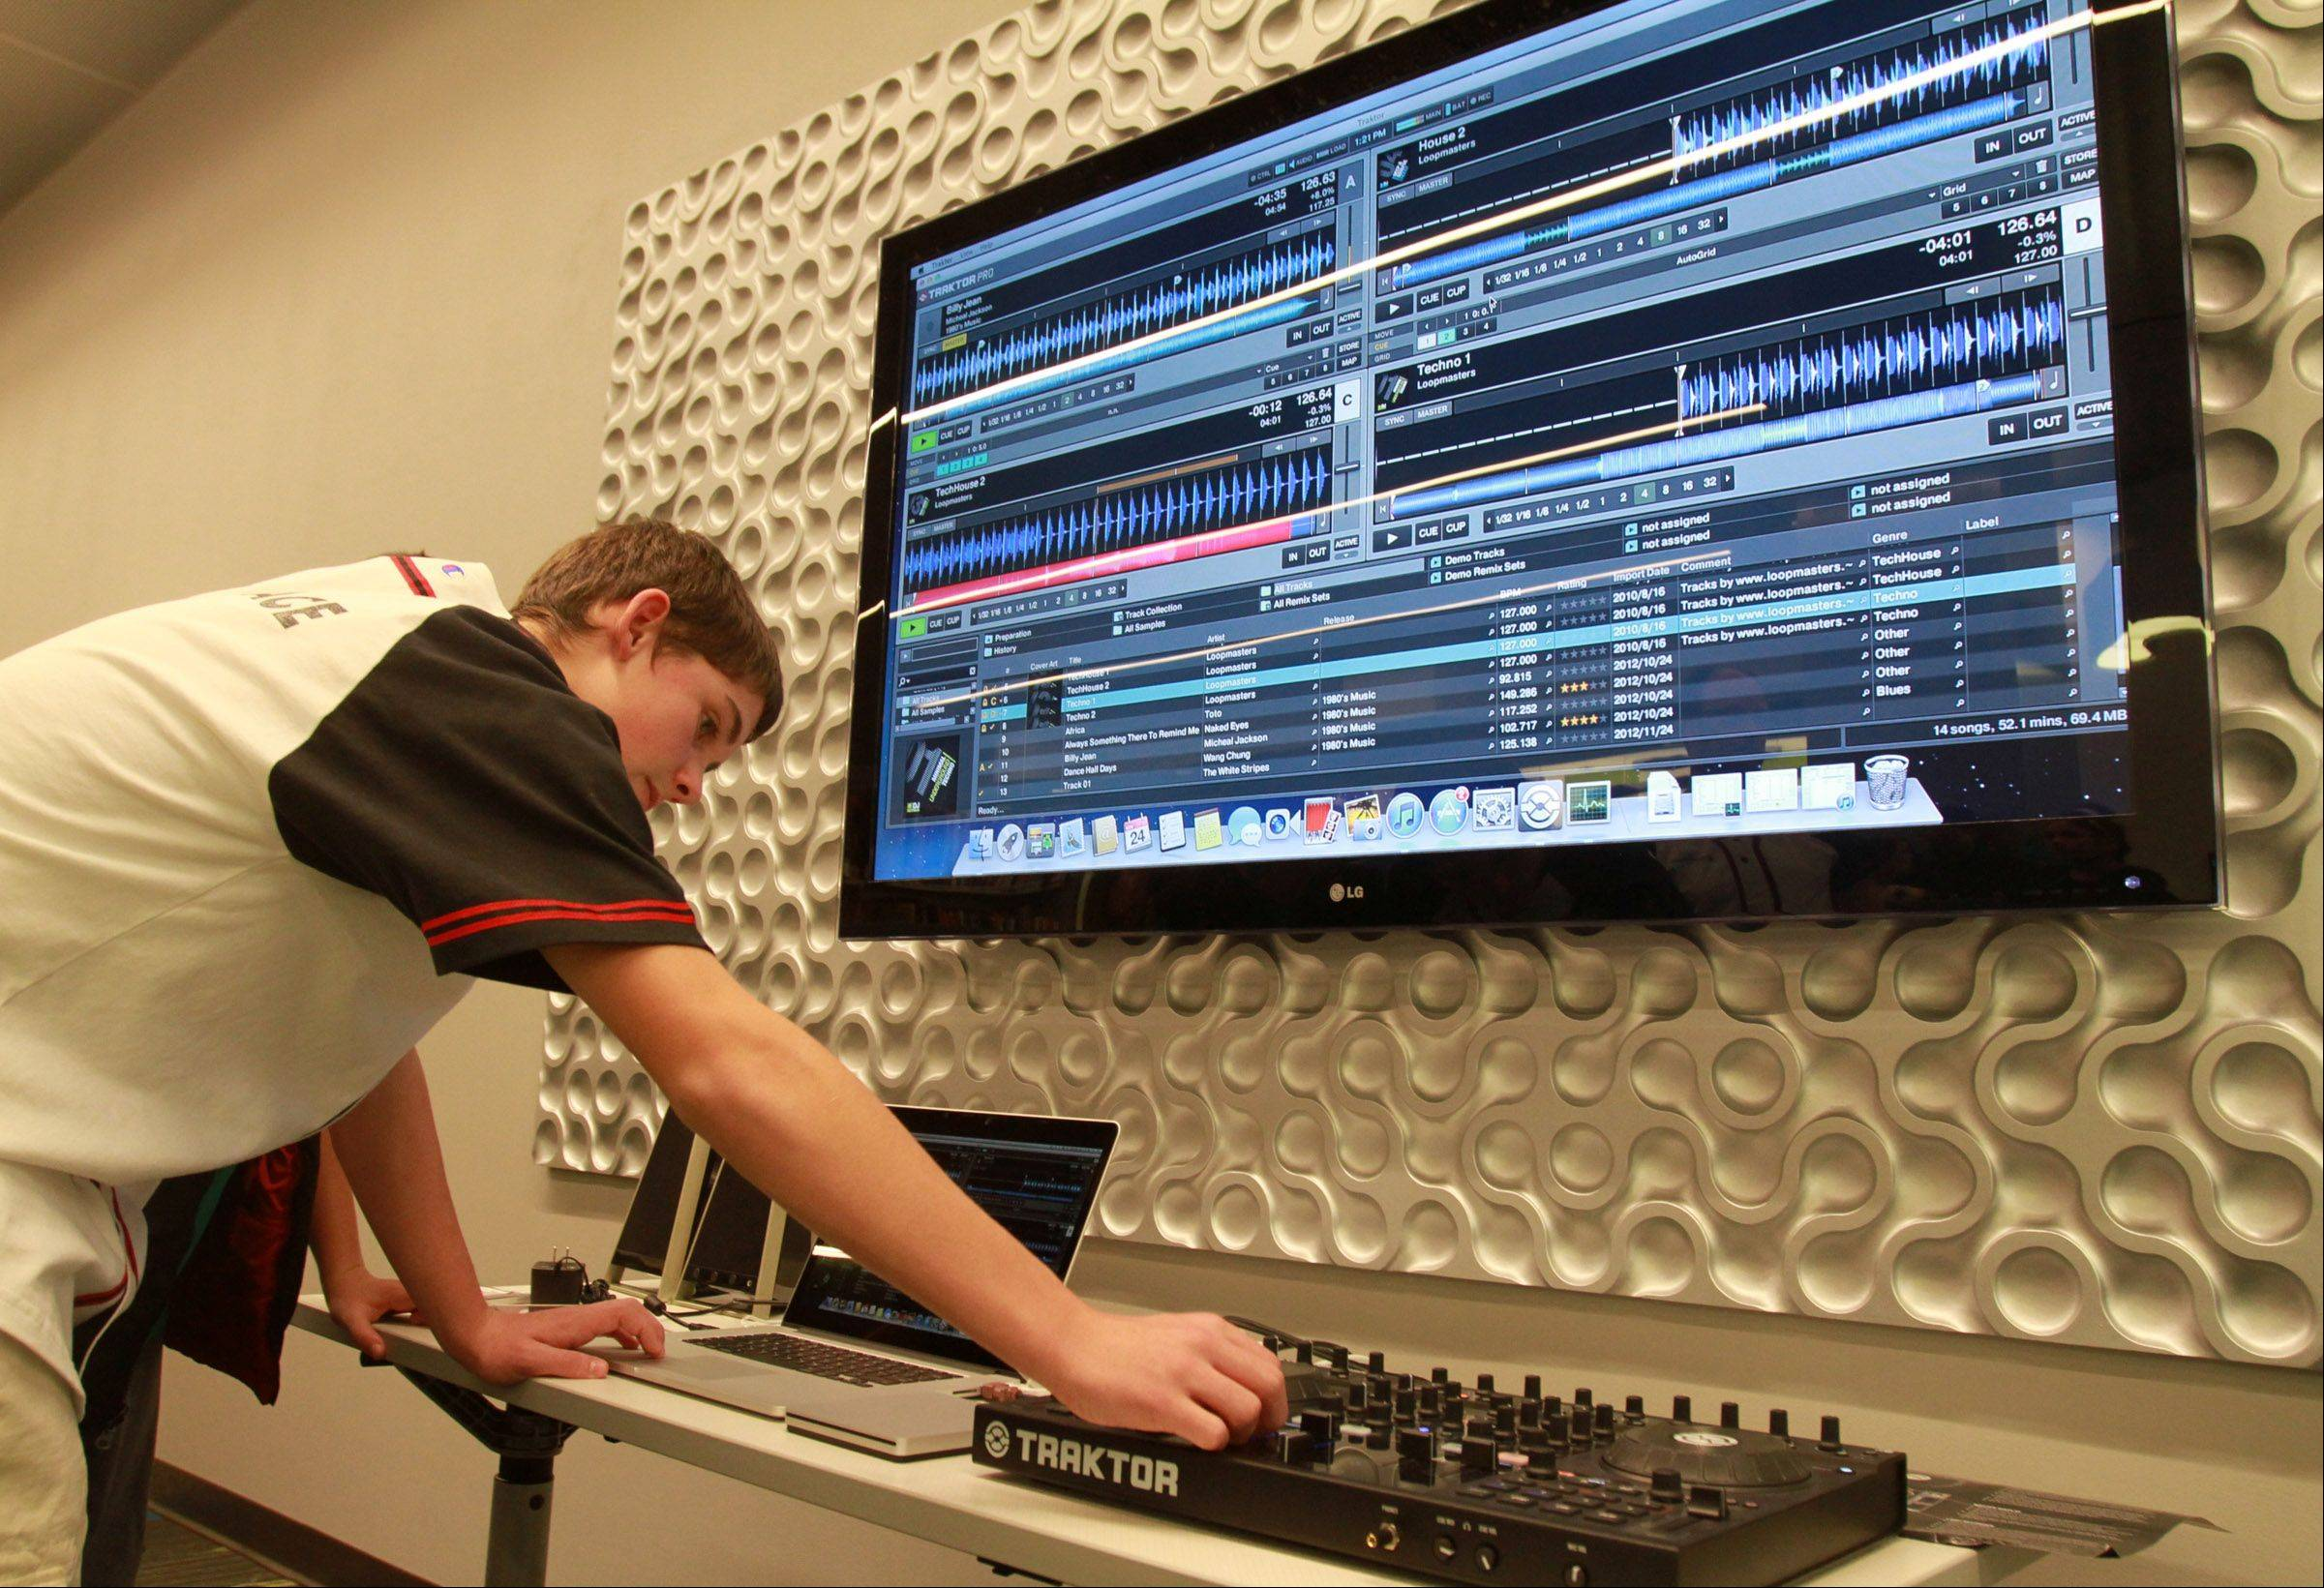 Matt Mussman, 15, of Schaumburg, samples audio Saturday in Schaumburg Township District Library's Teen Place digital music creation station. Teen Place is a state-of-the-art, 6,000-square-foot multipurpose area full of new technology that community teens can use for school, skill building, group projects and creative fun.